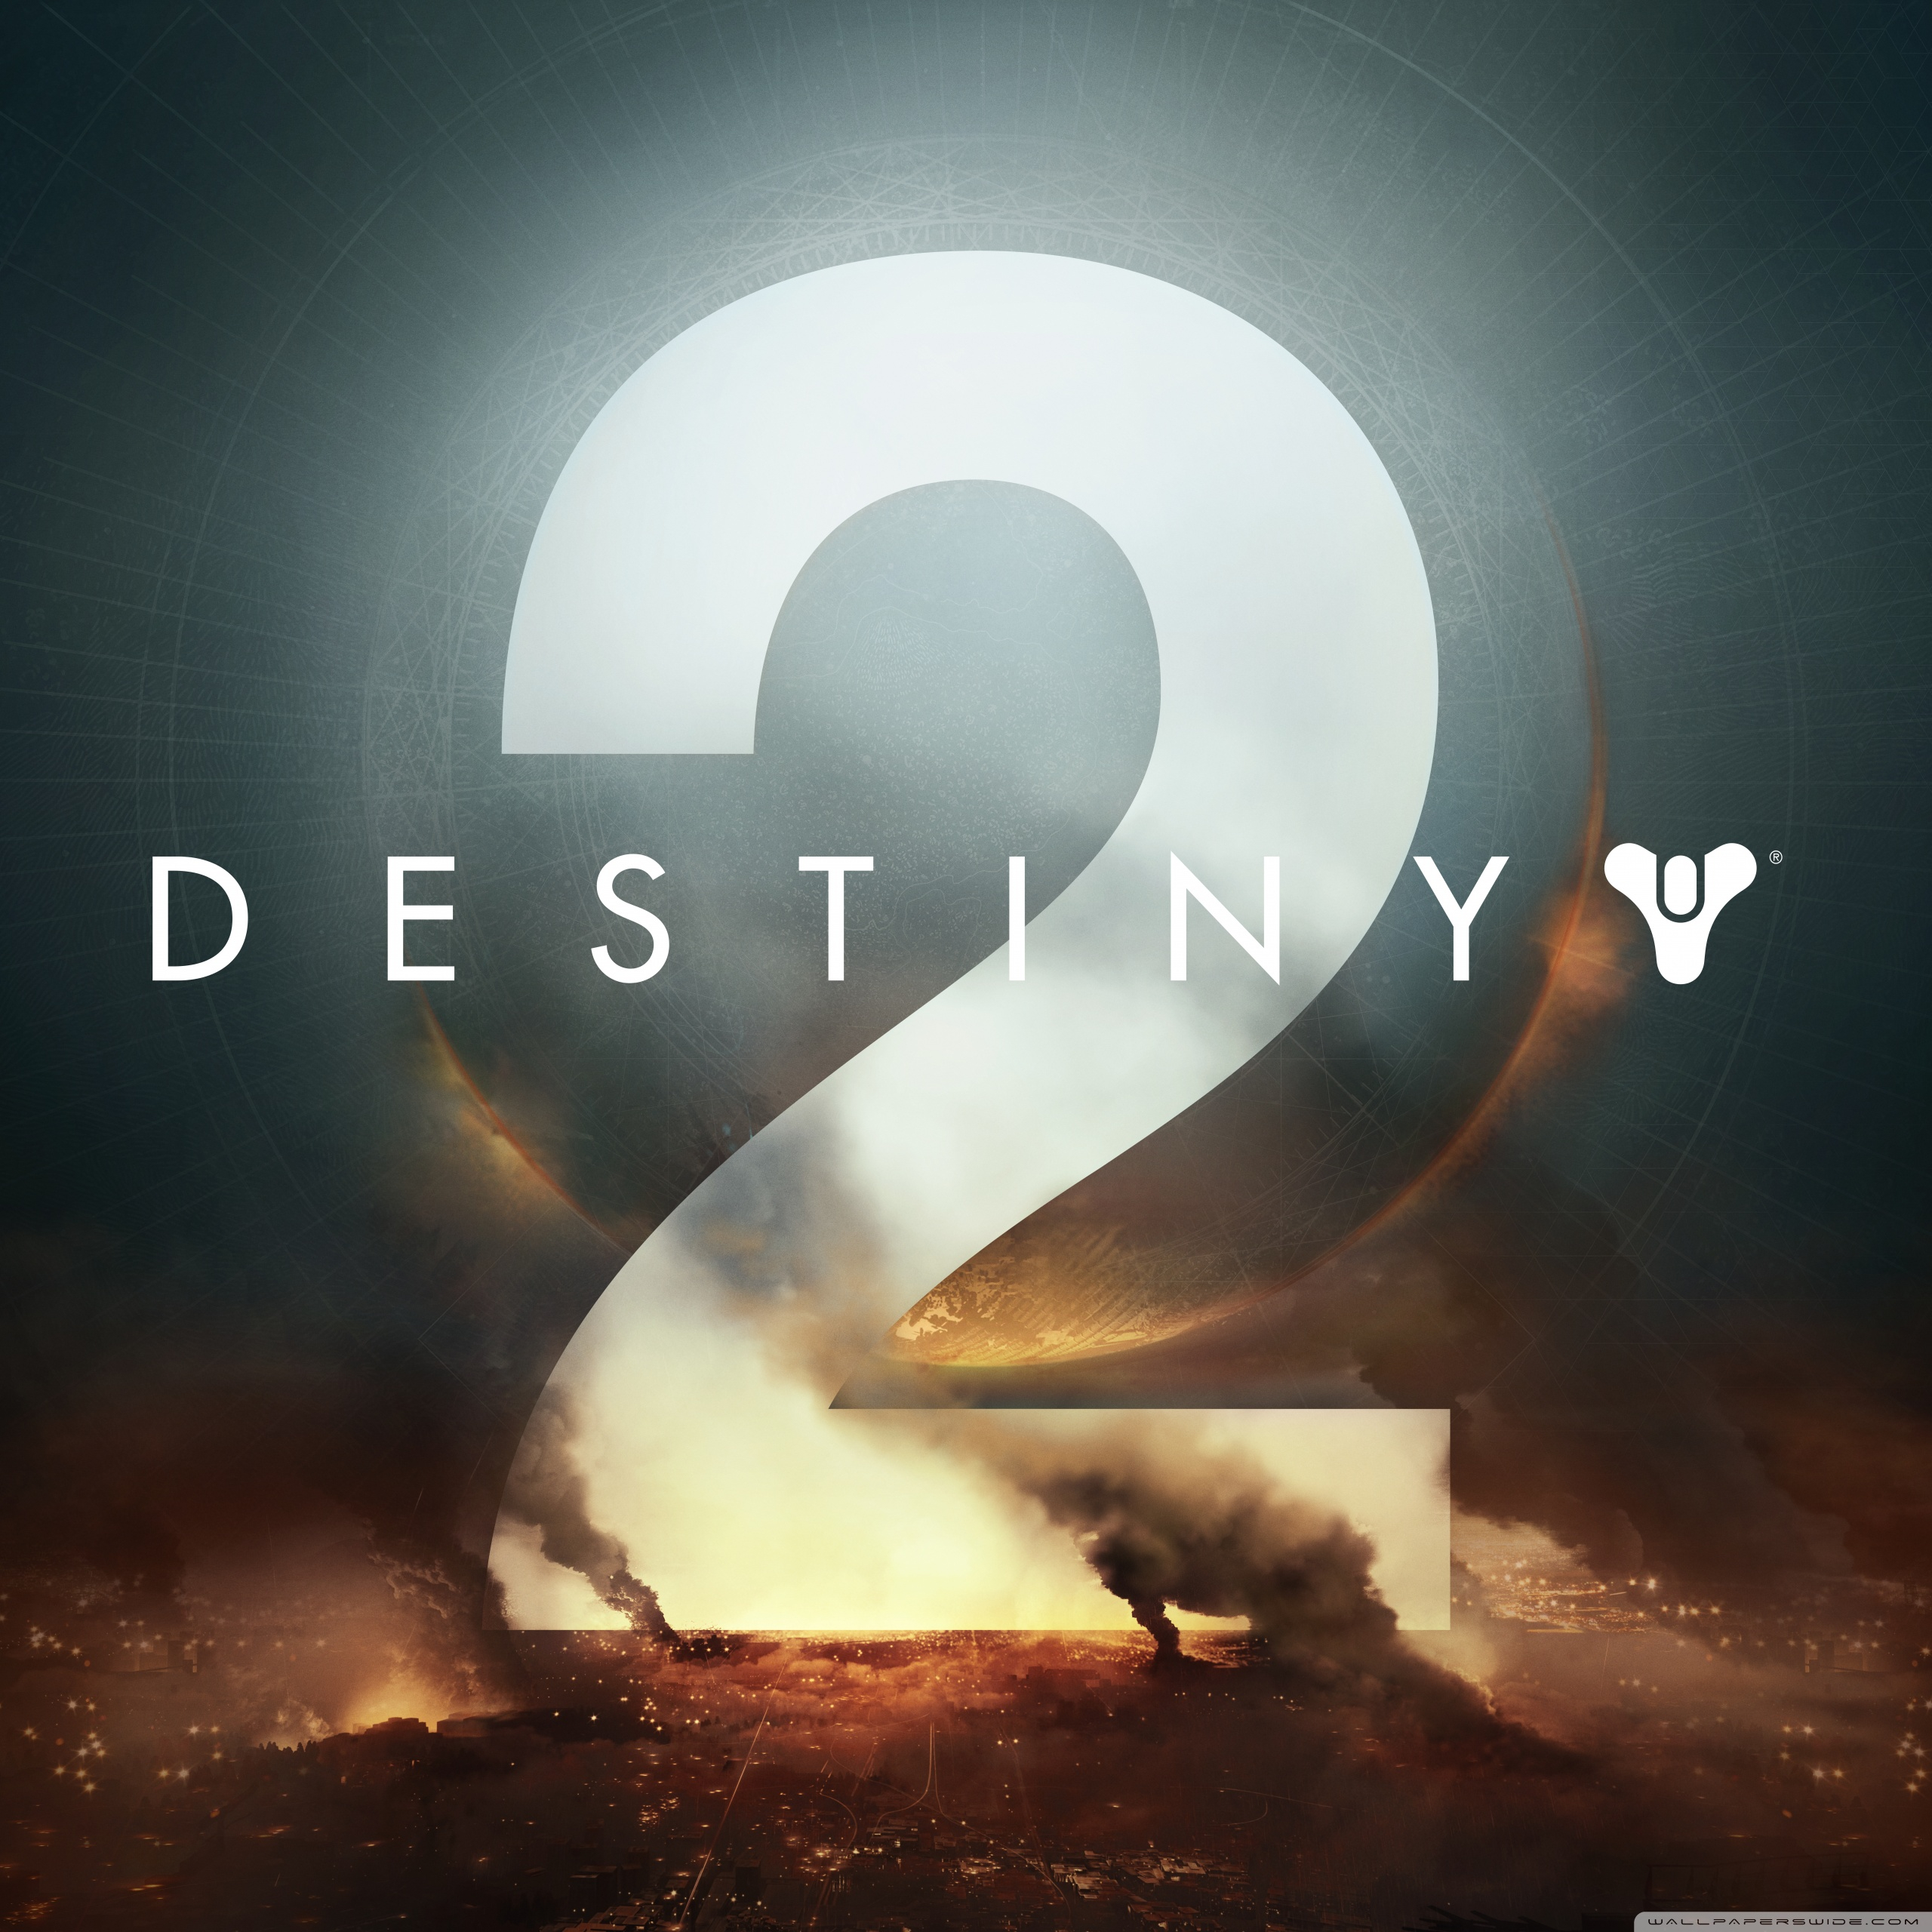 destiny 2 video game 2017 wallpapers